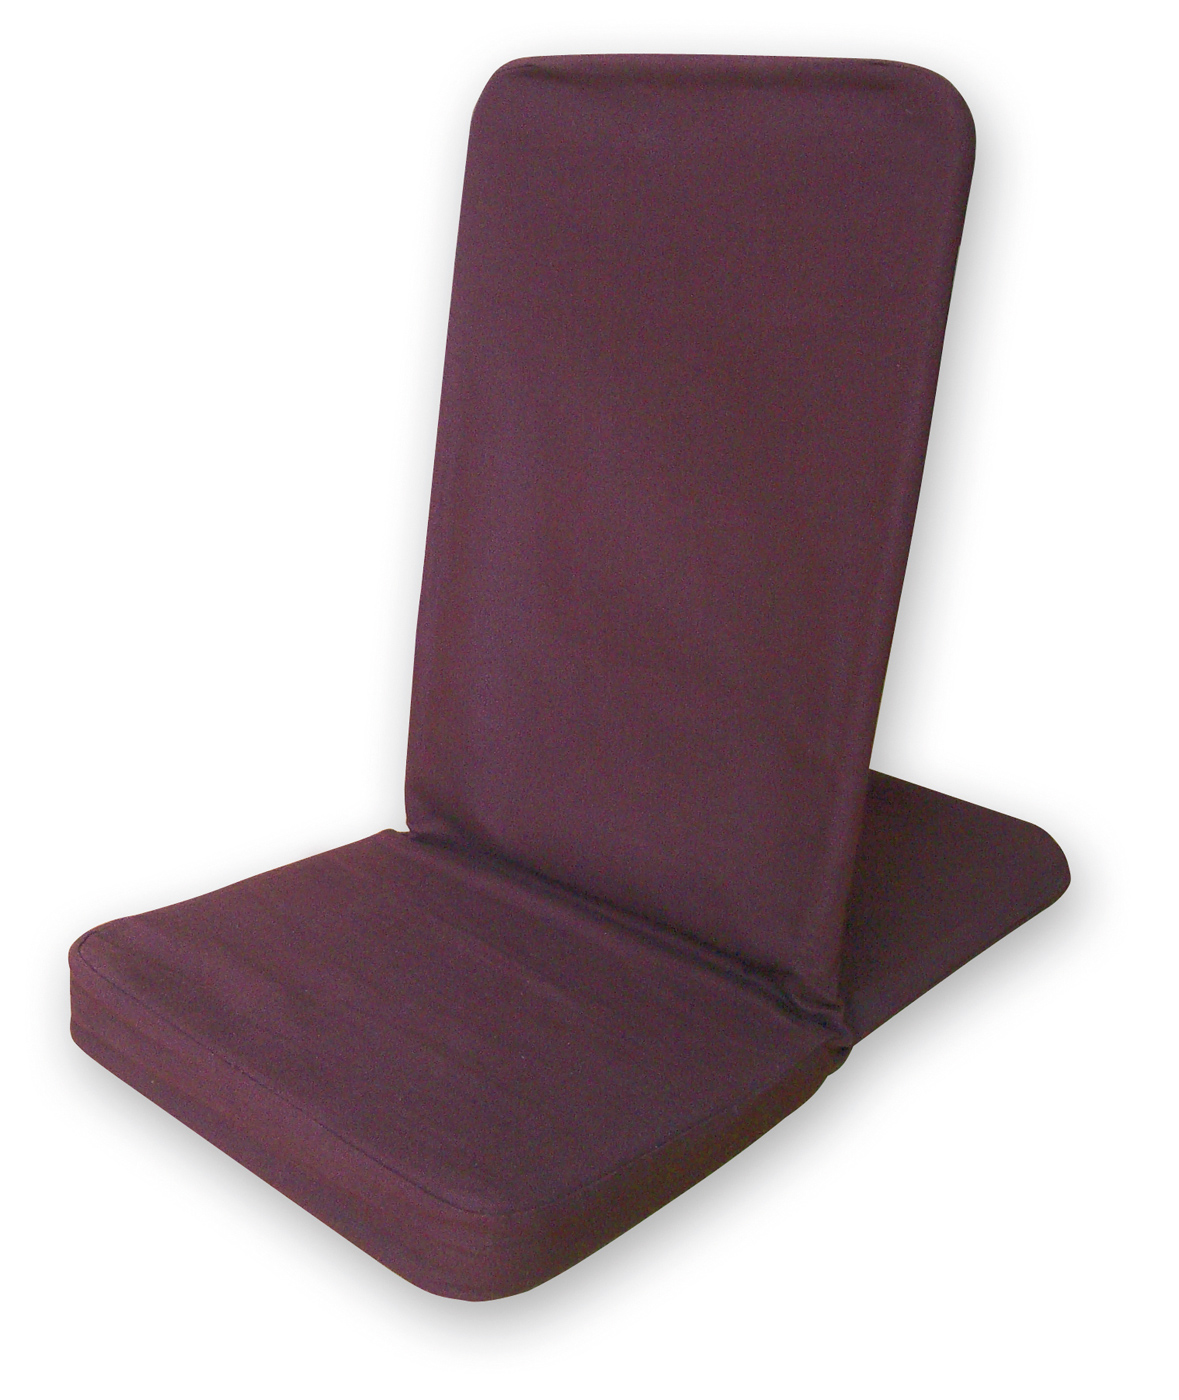 Silla de meditación plegable - Folding Backjack